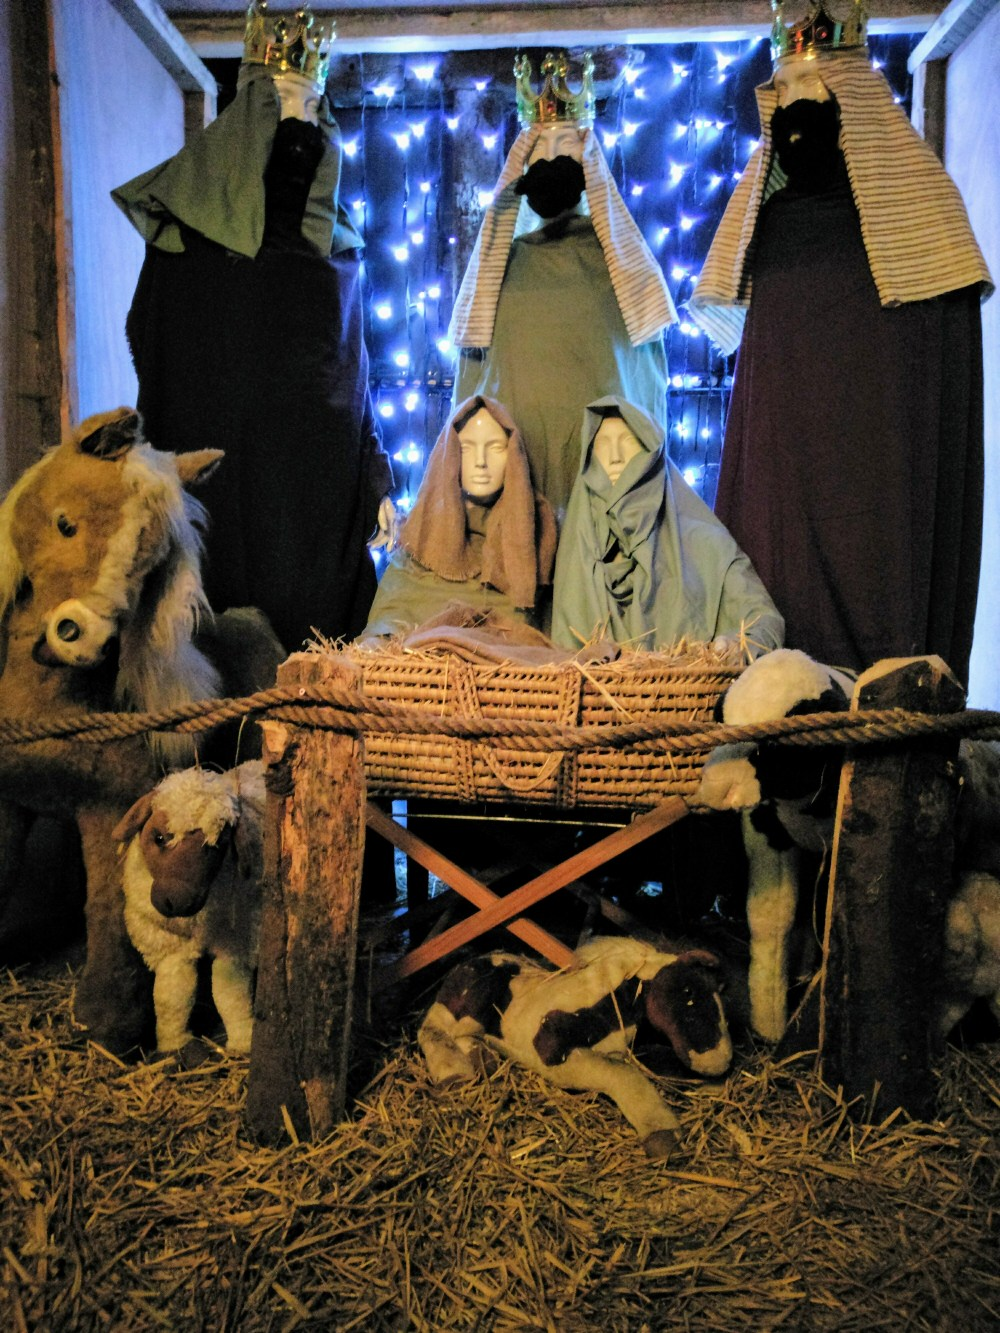 A large model nativity scene.